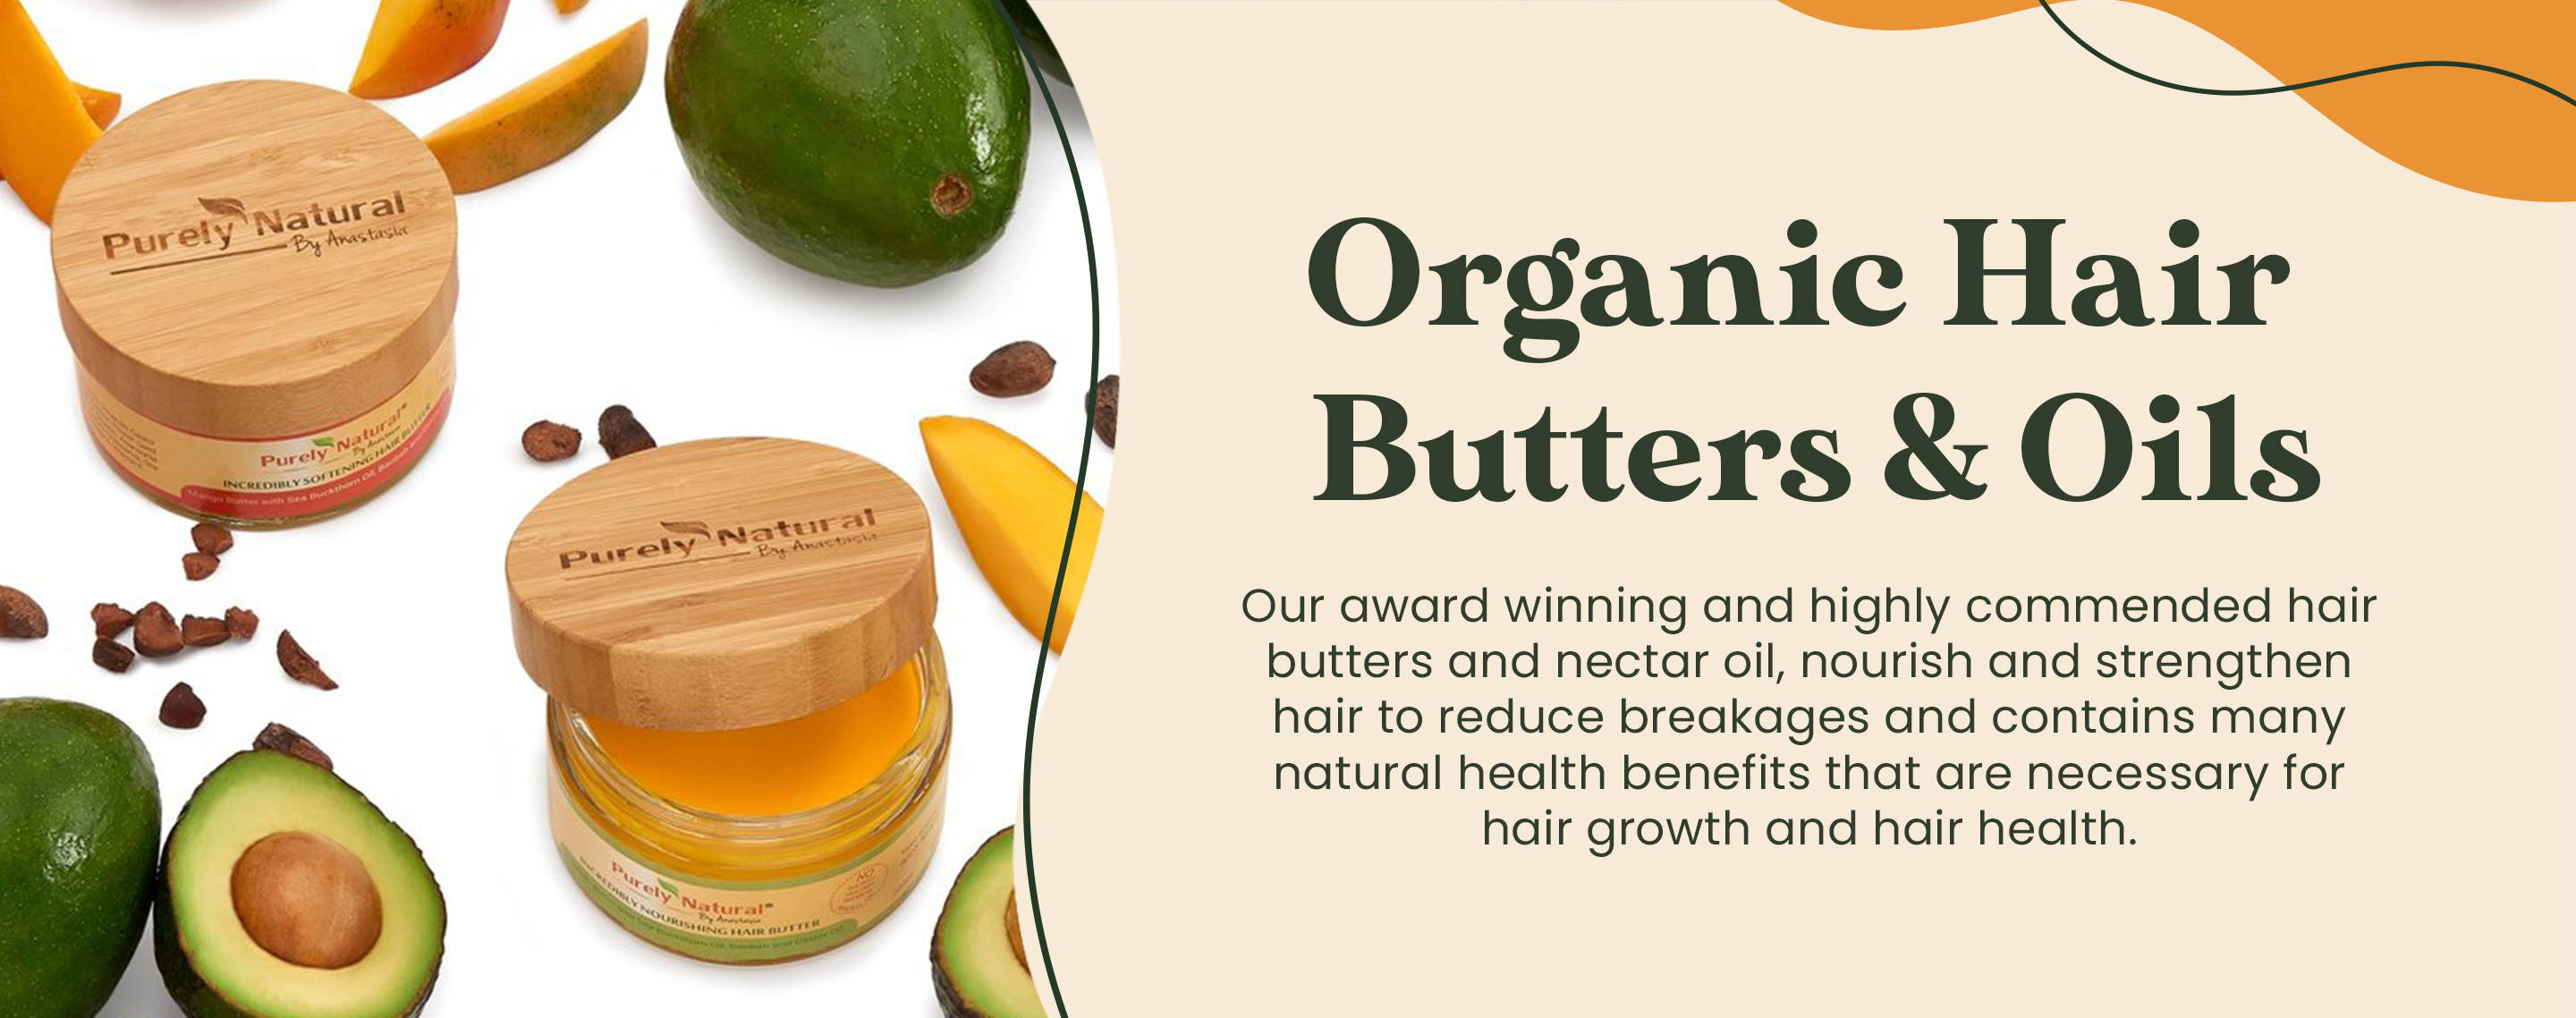 Organic Hair Butters and oil from Purely Natural by Anastasia